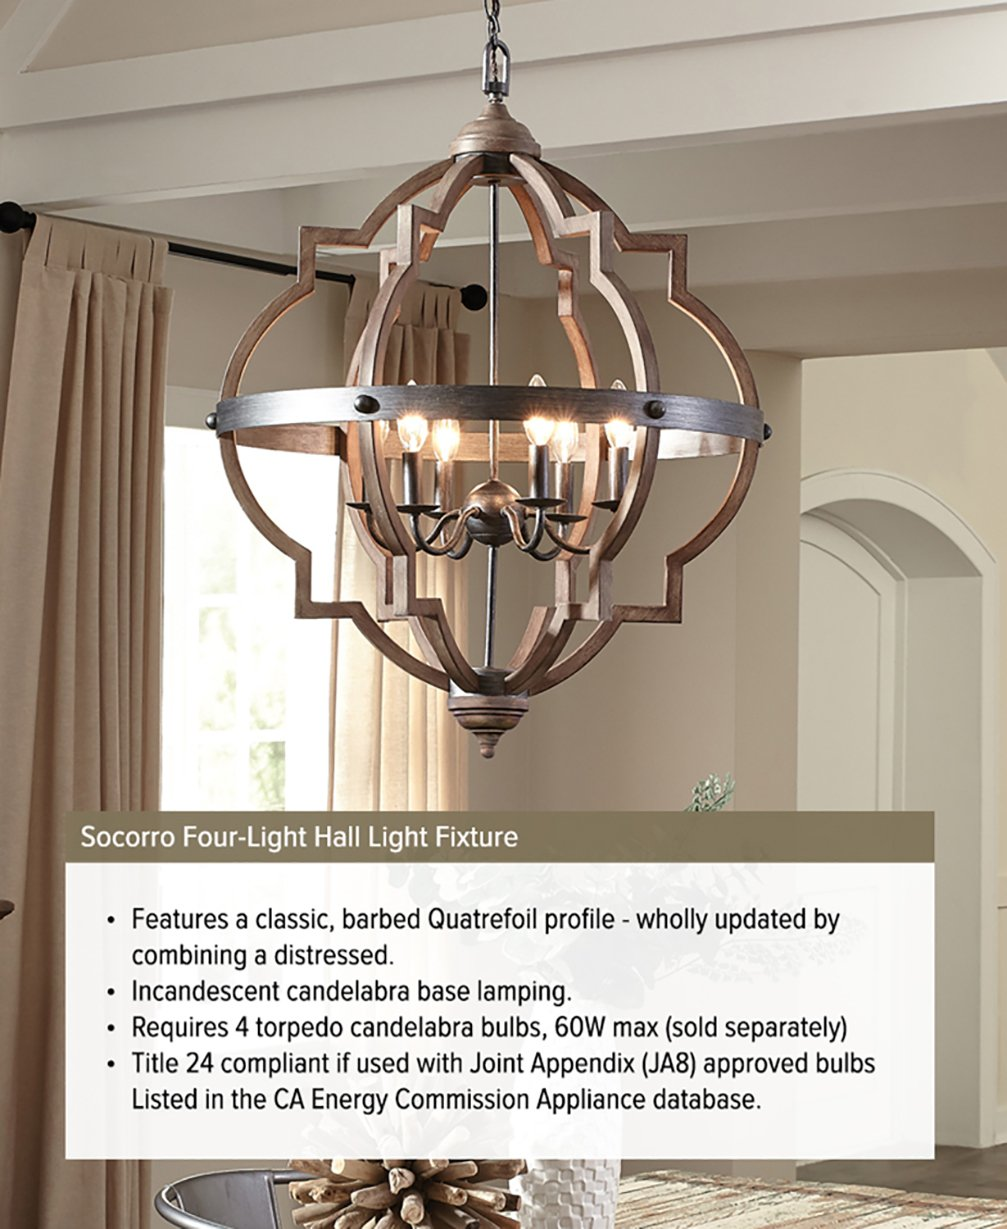 Sea gull lighting 5124904 846 socorro four light hall or foyer light sea gull lighting 5124904 846 socorro four light hall or foyer light fixture stardust finish amazon aloadofball Image collections